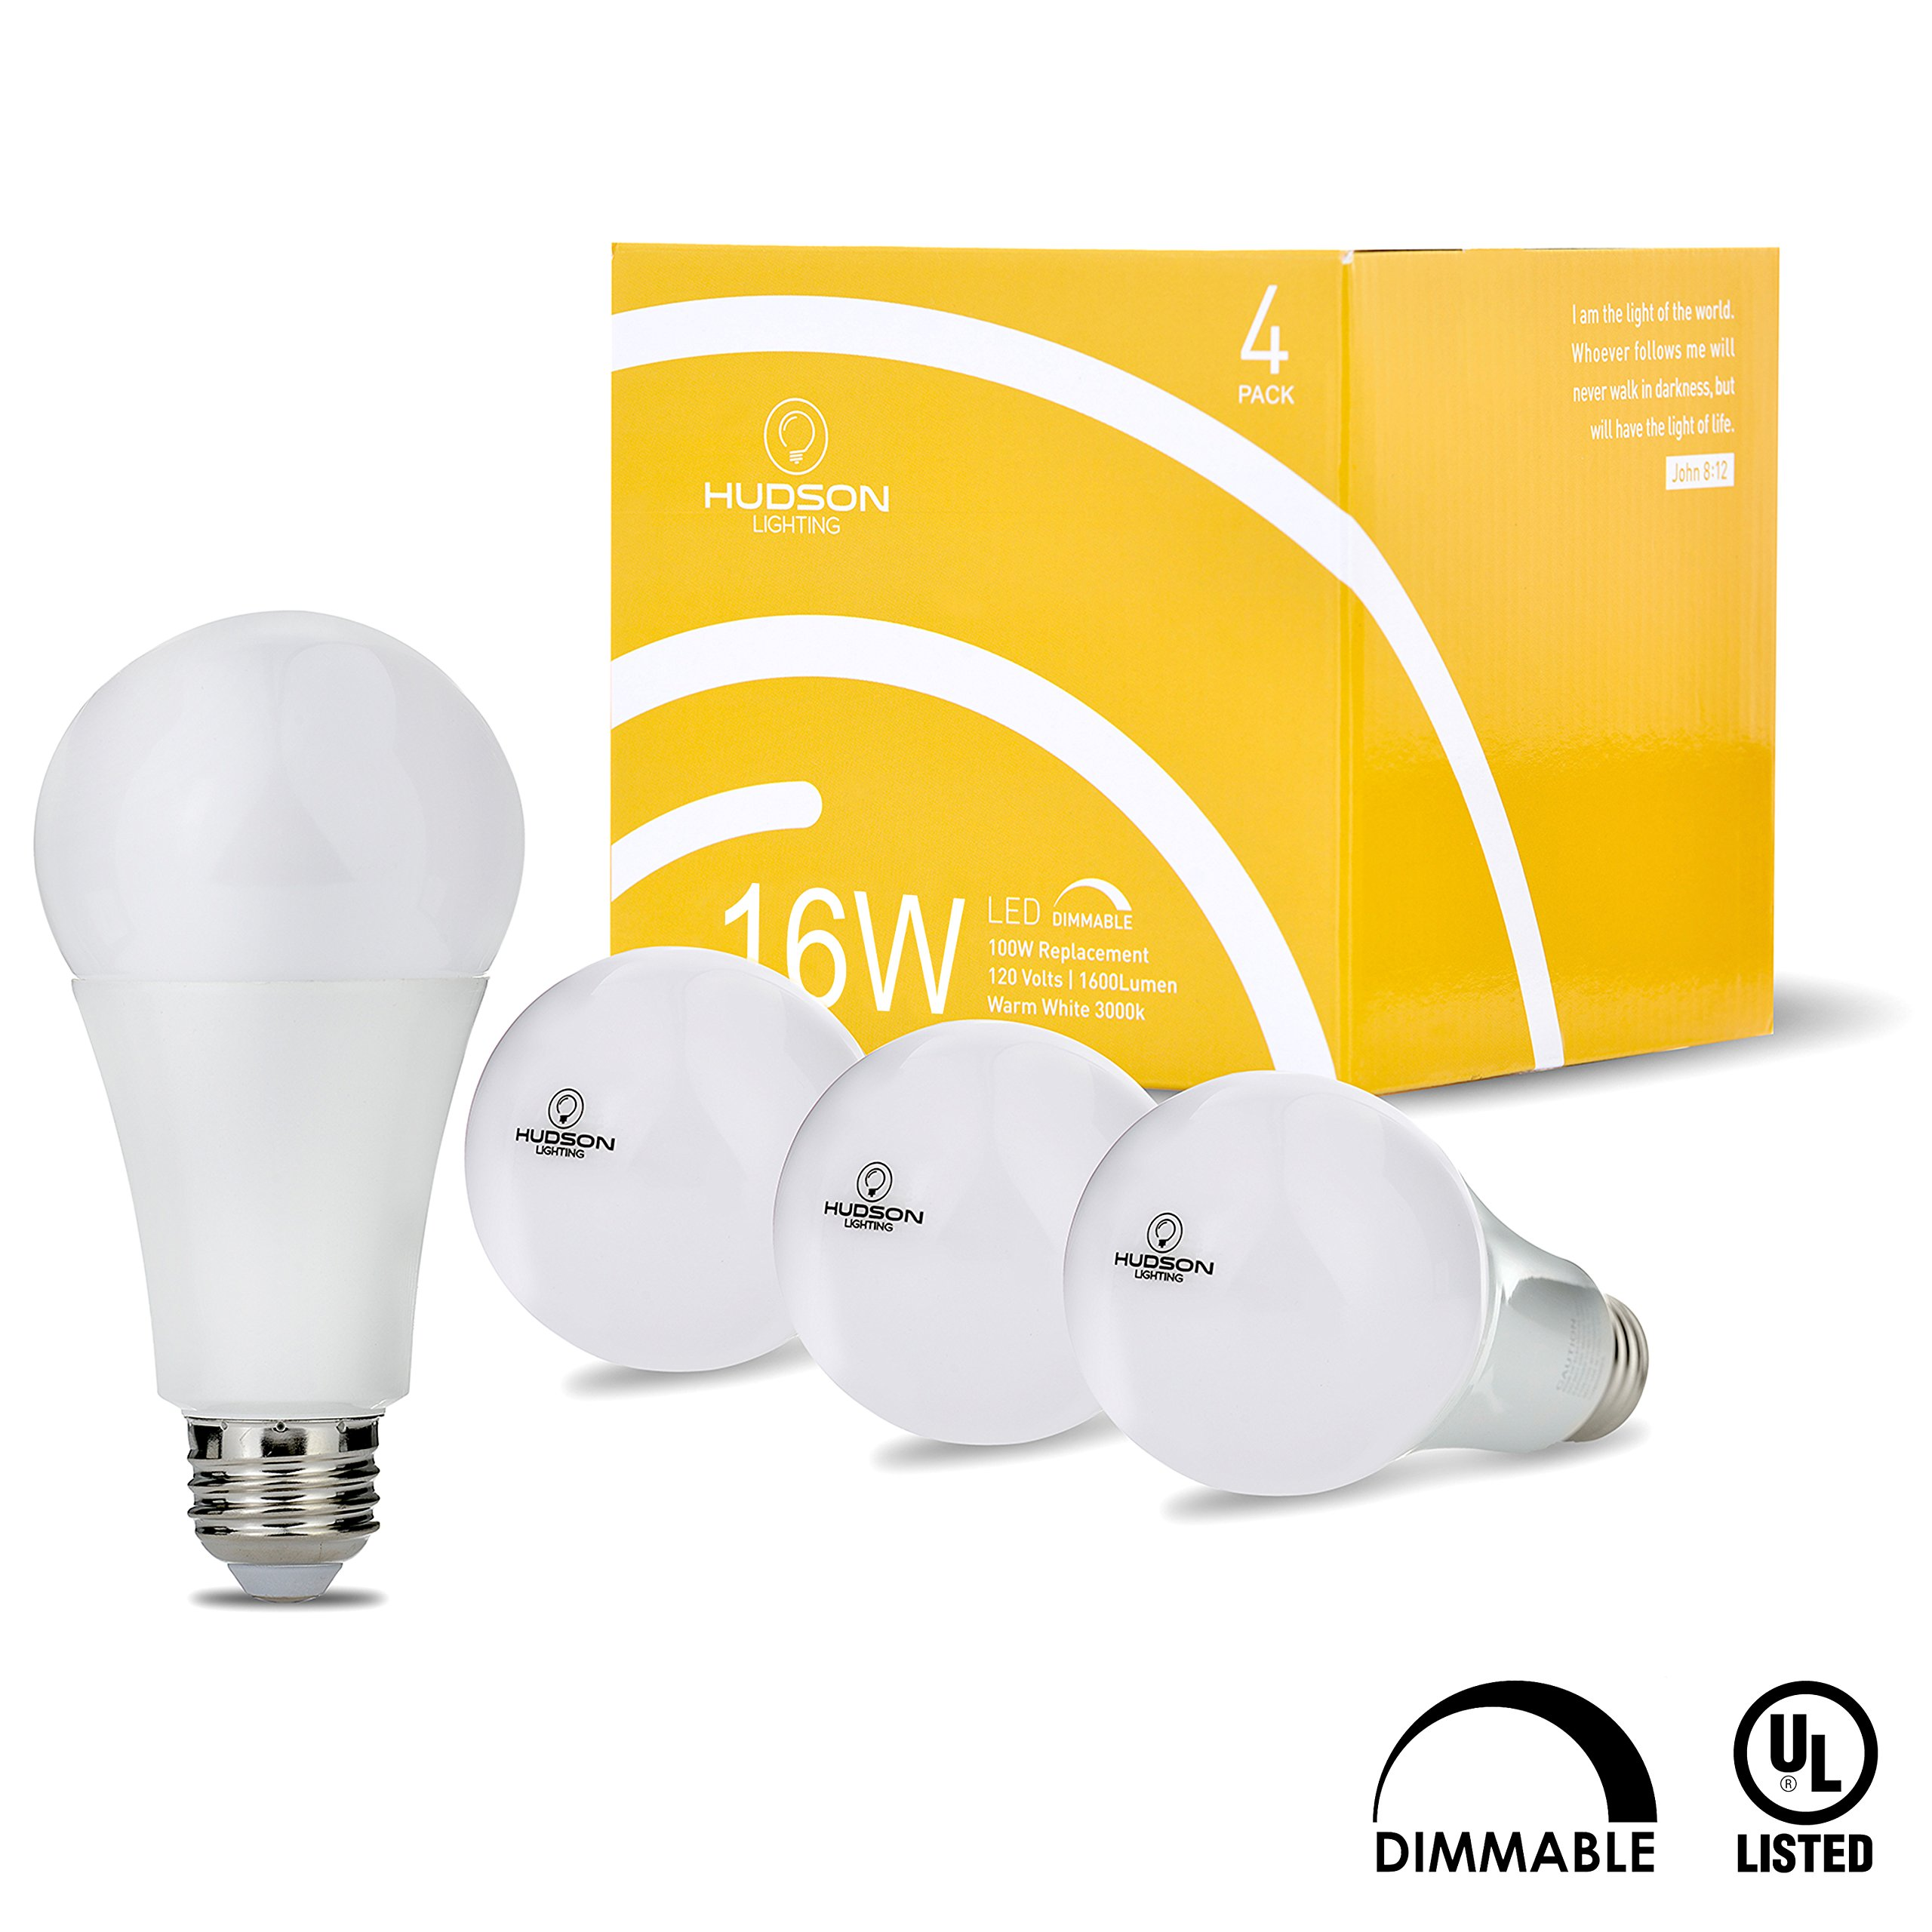 LEDesign HA21, DimmablSmart, Wi-Fi, LED Bulbs, A60, Dimmable, Smartphone Controlled Daylight & Night, Home Lighting, Compatible with Alexa